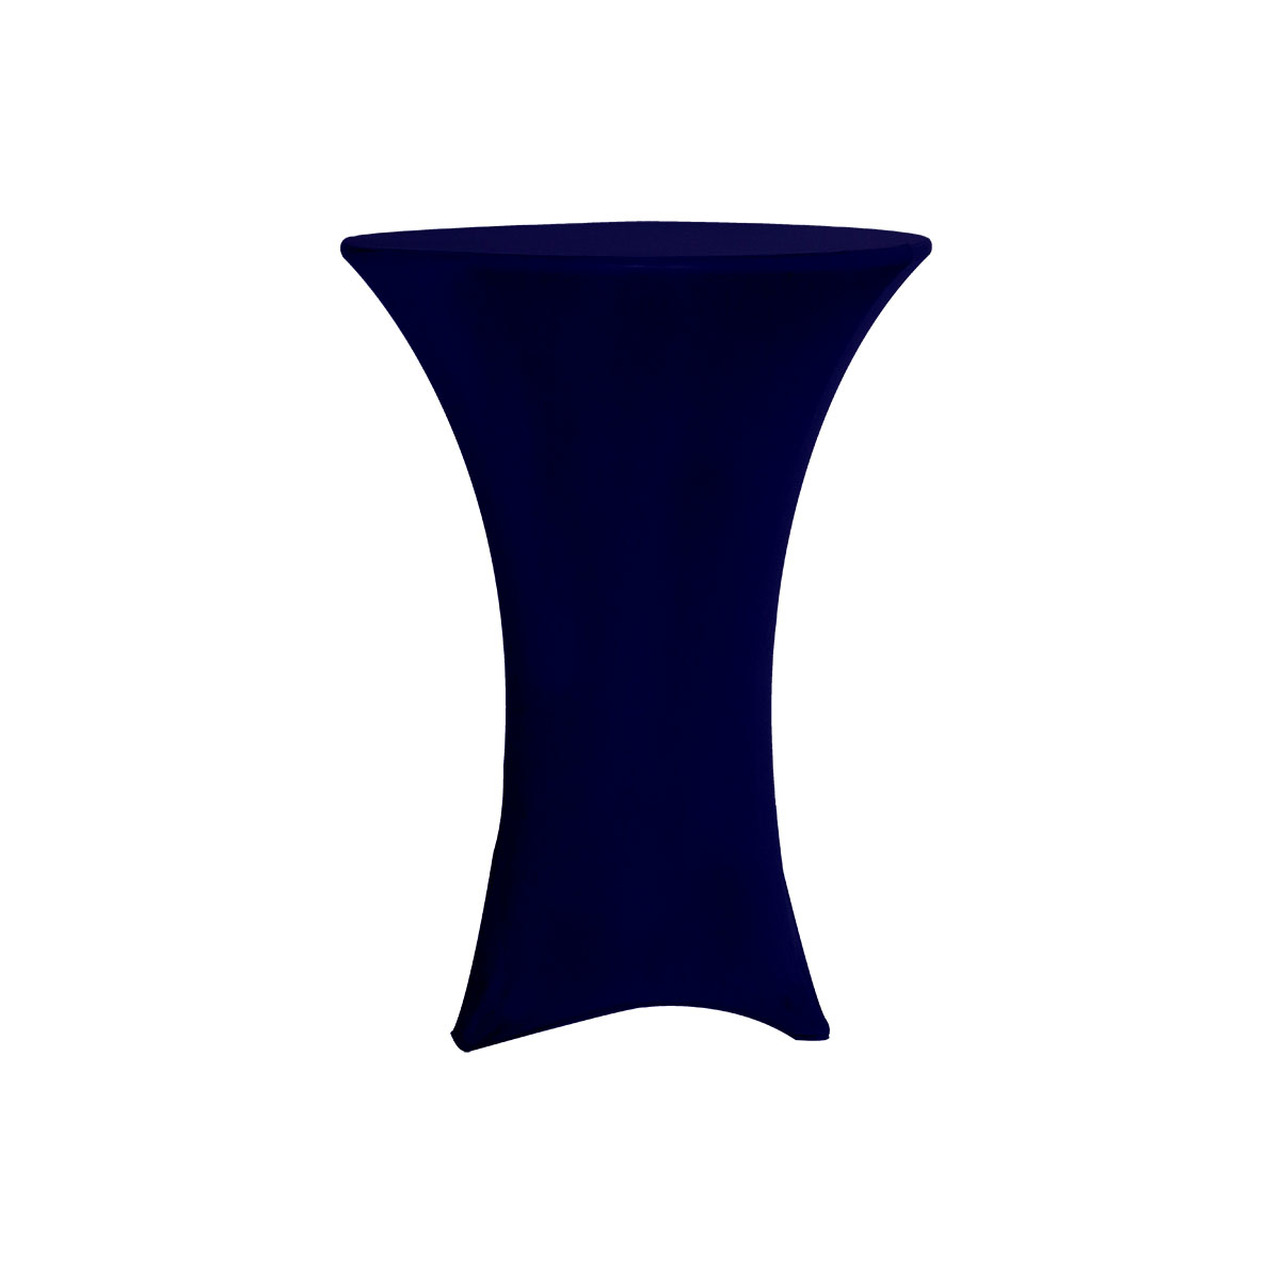 SPANDEX TABLE COVER NAVY BLUE